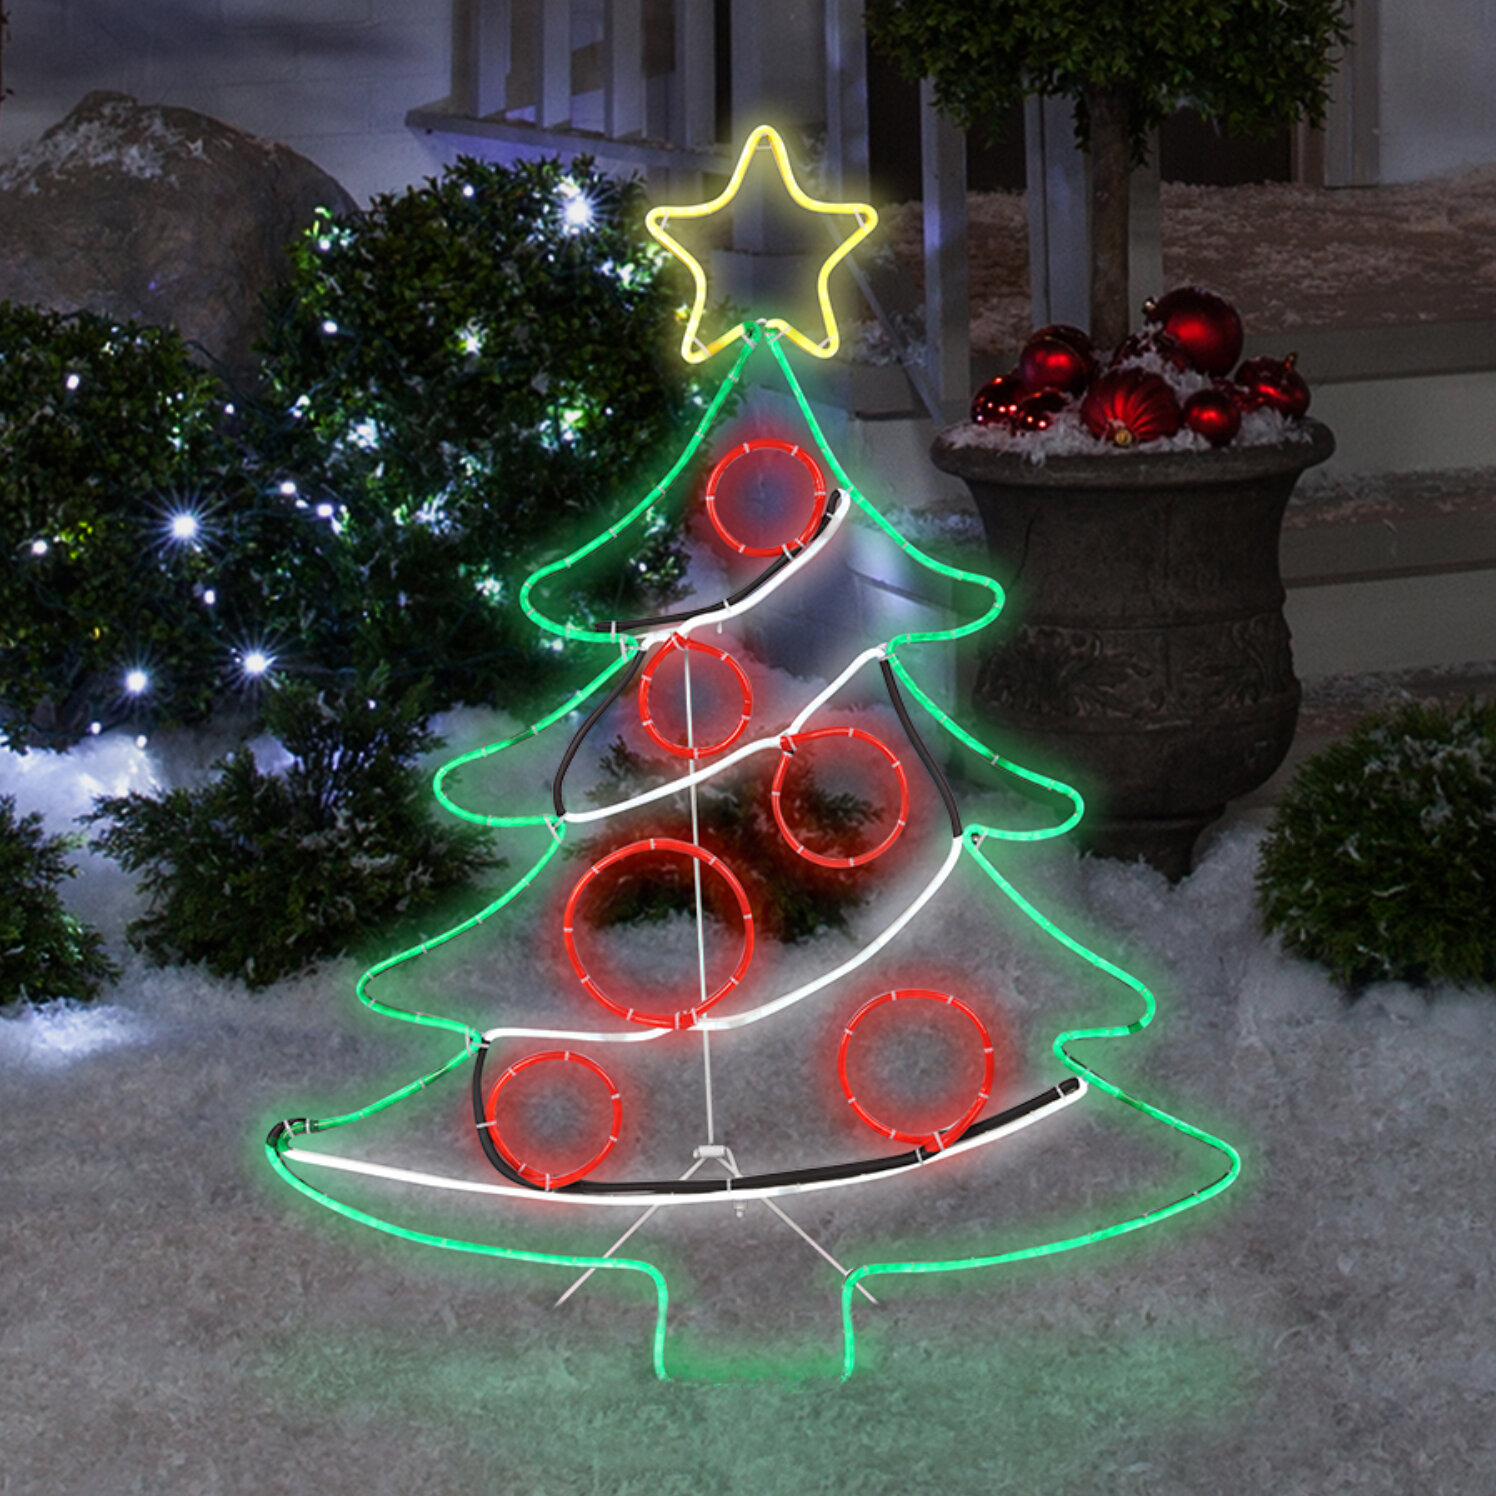 The Holiday Aisle Light Glo Christmas Tree With Star Lighted Display